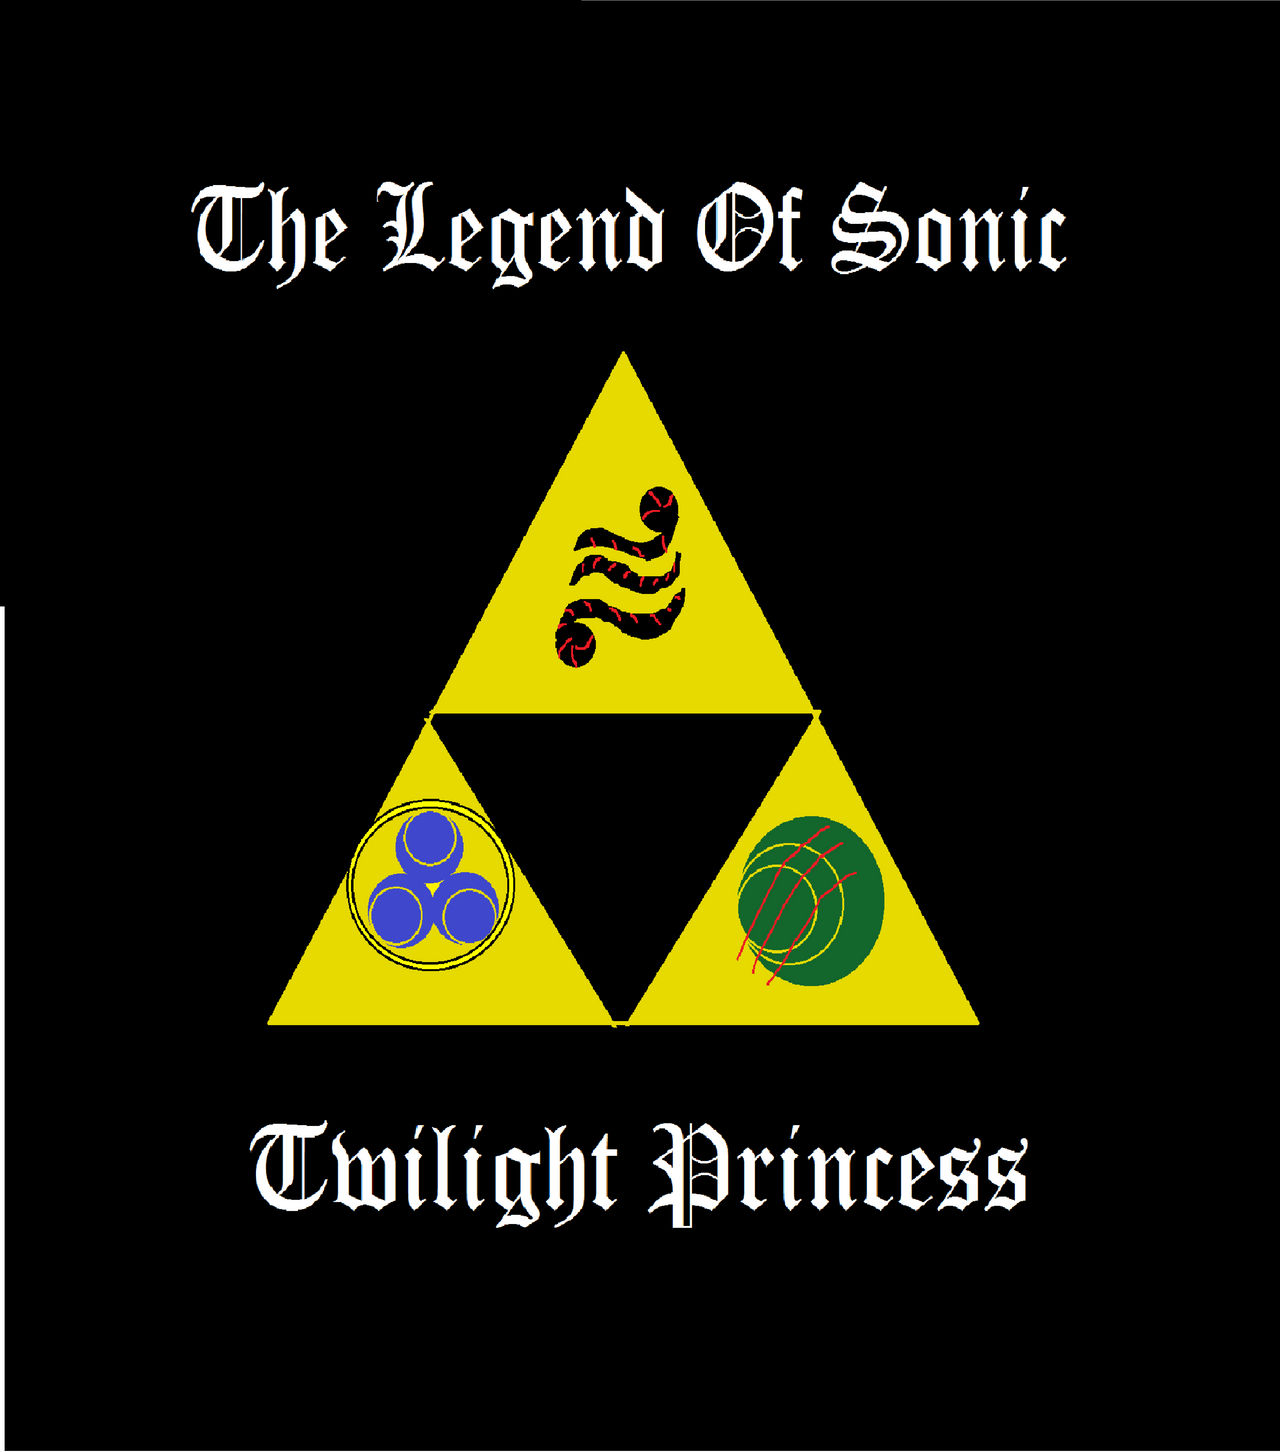 Twilight Vision White Speck That >> The Legend Of Sonic Twilight Princess By Dream Dragoness On Deviantart